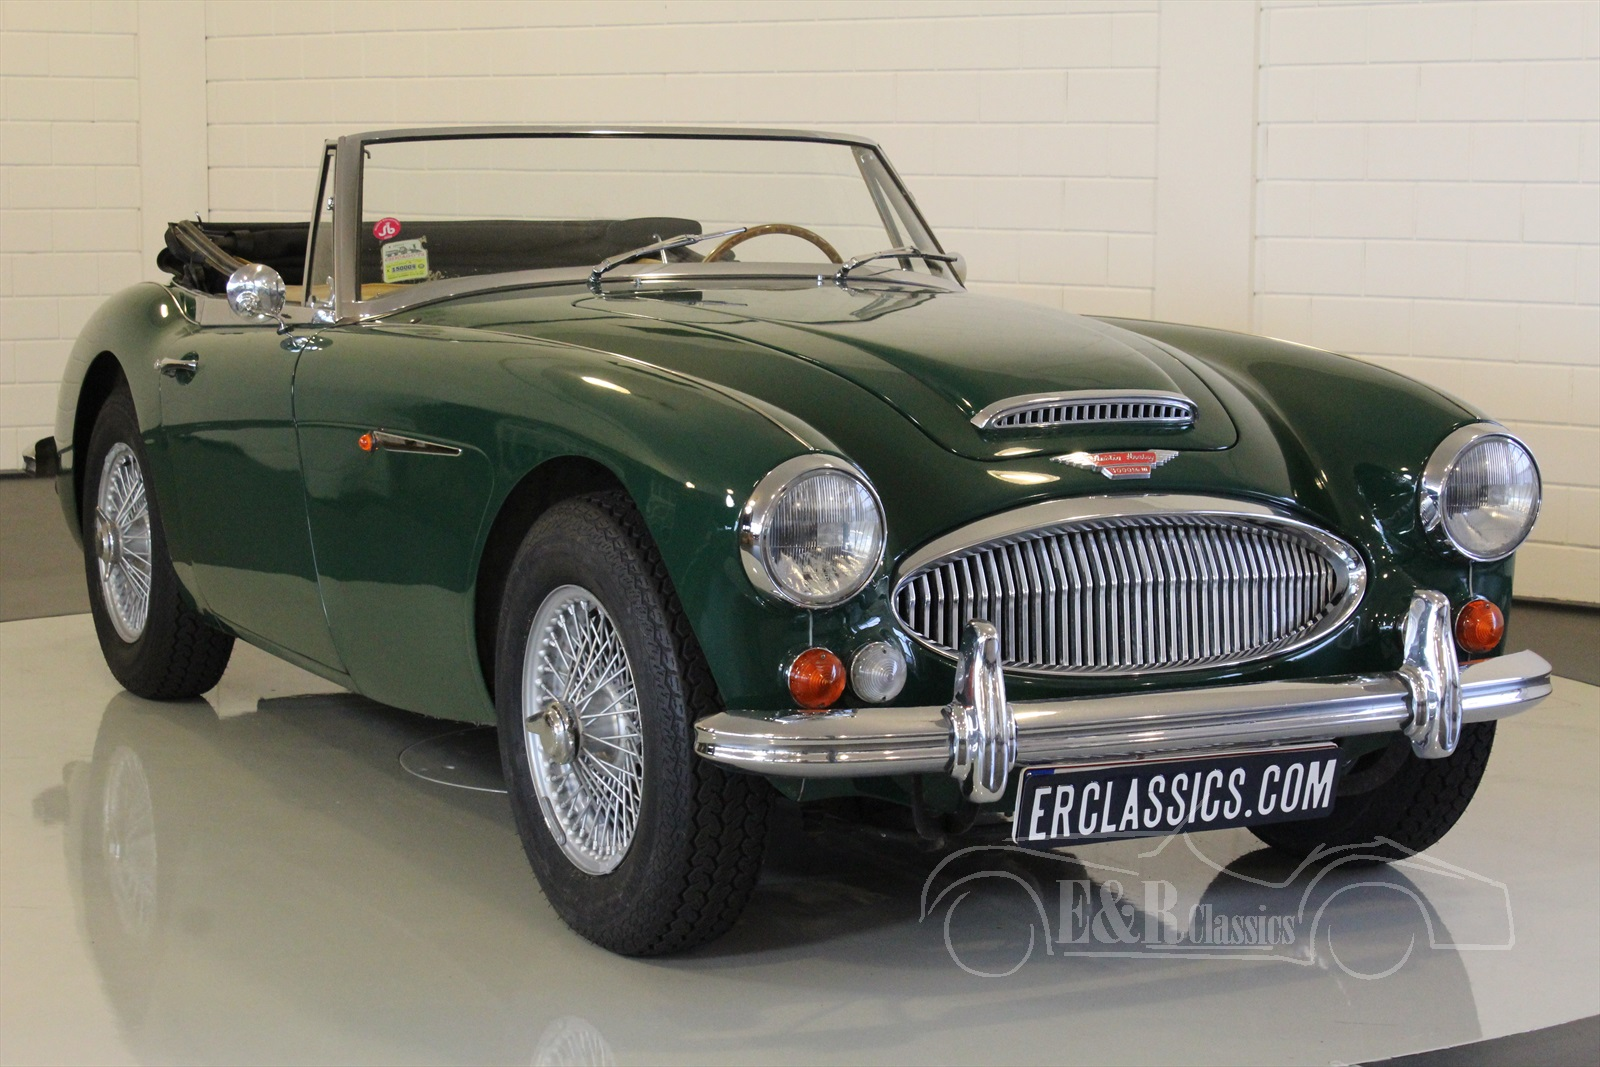 austin healey 3000 mk iii for sale at e r classic cars. Black Bedroom Furniture Sets. Home Design Ideas